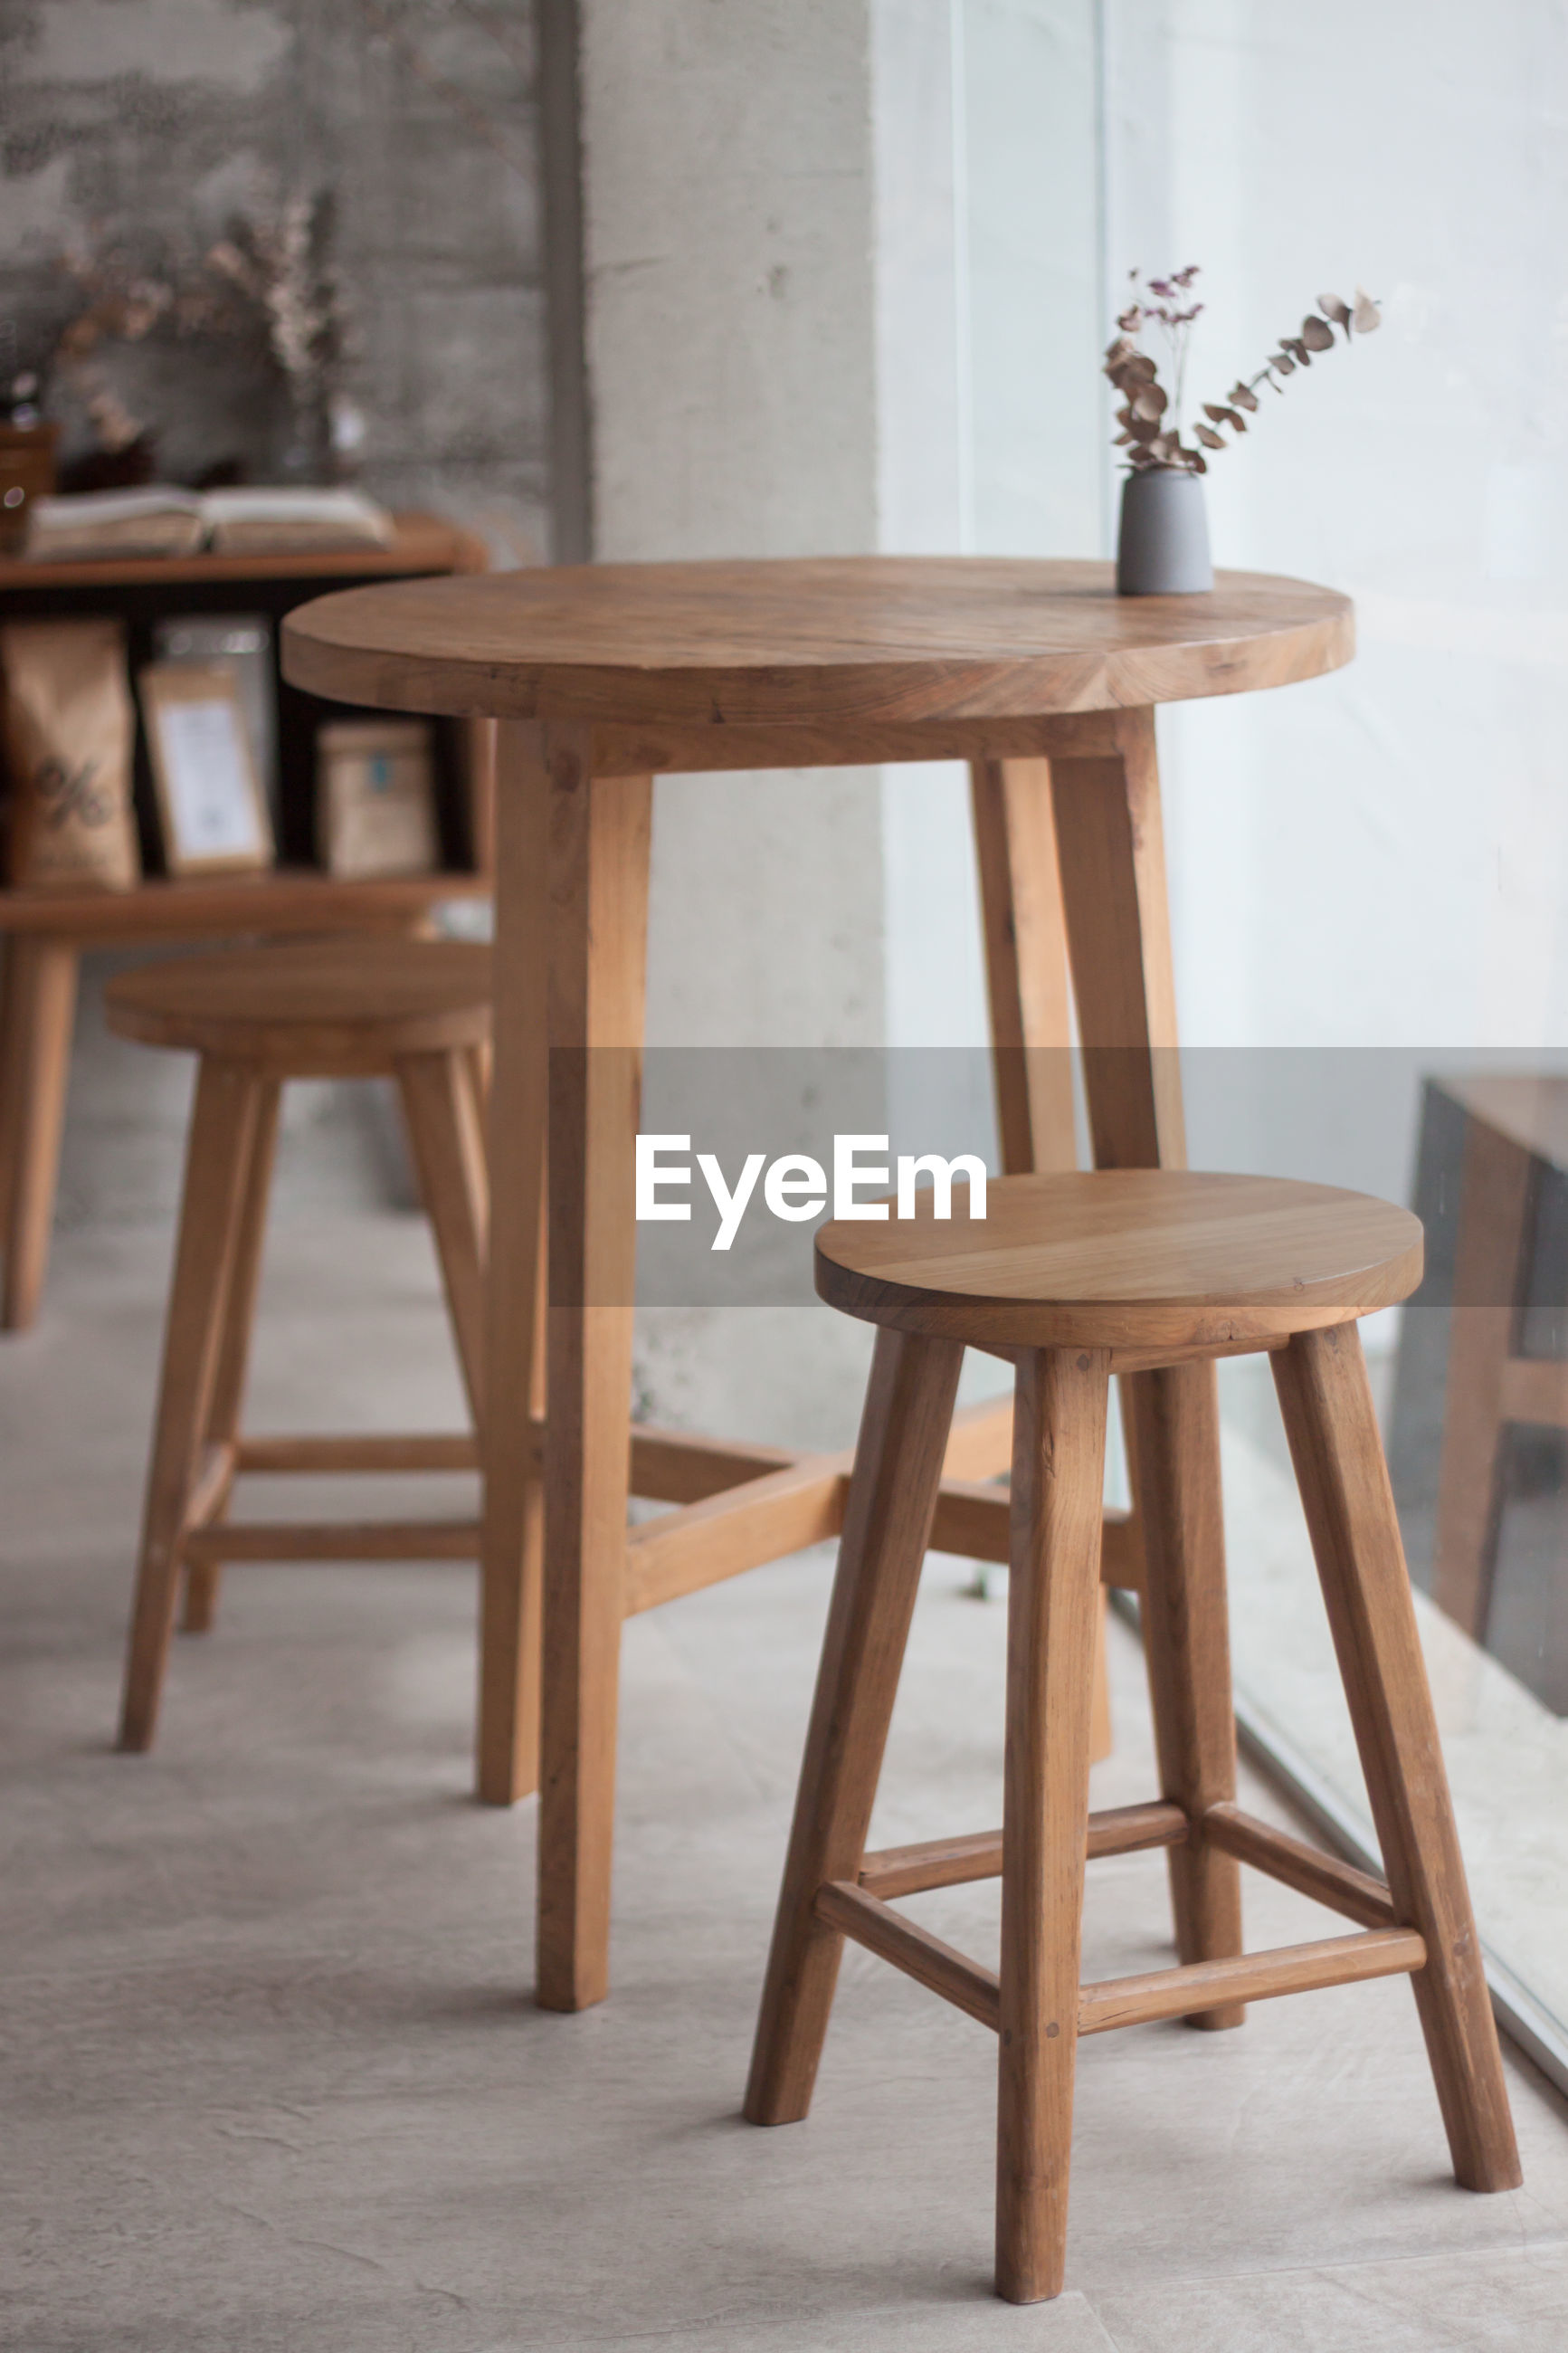 Empty stools and table at cafe